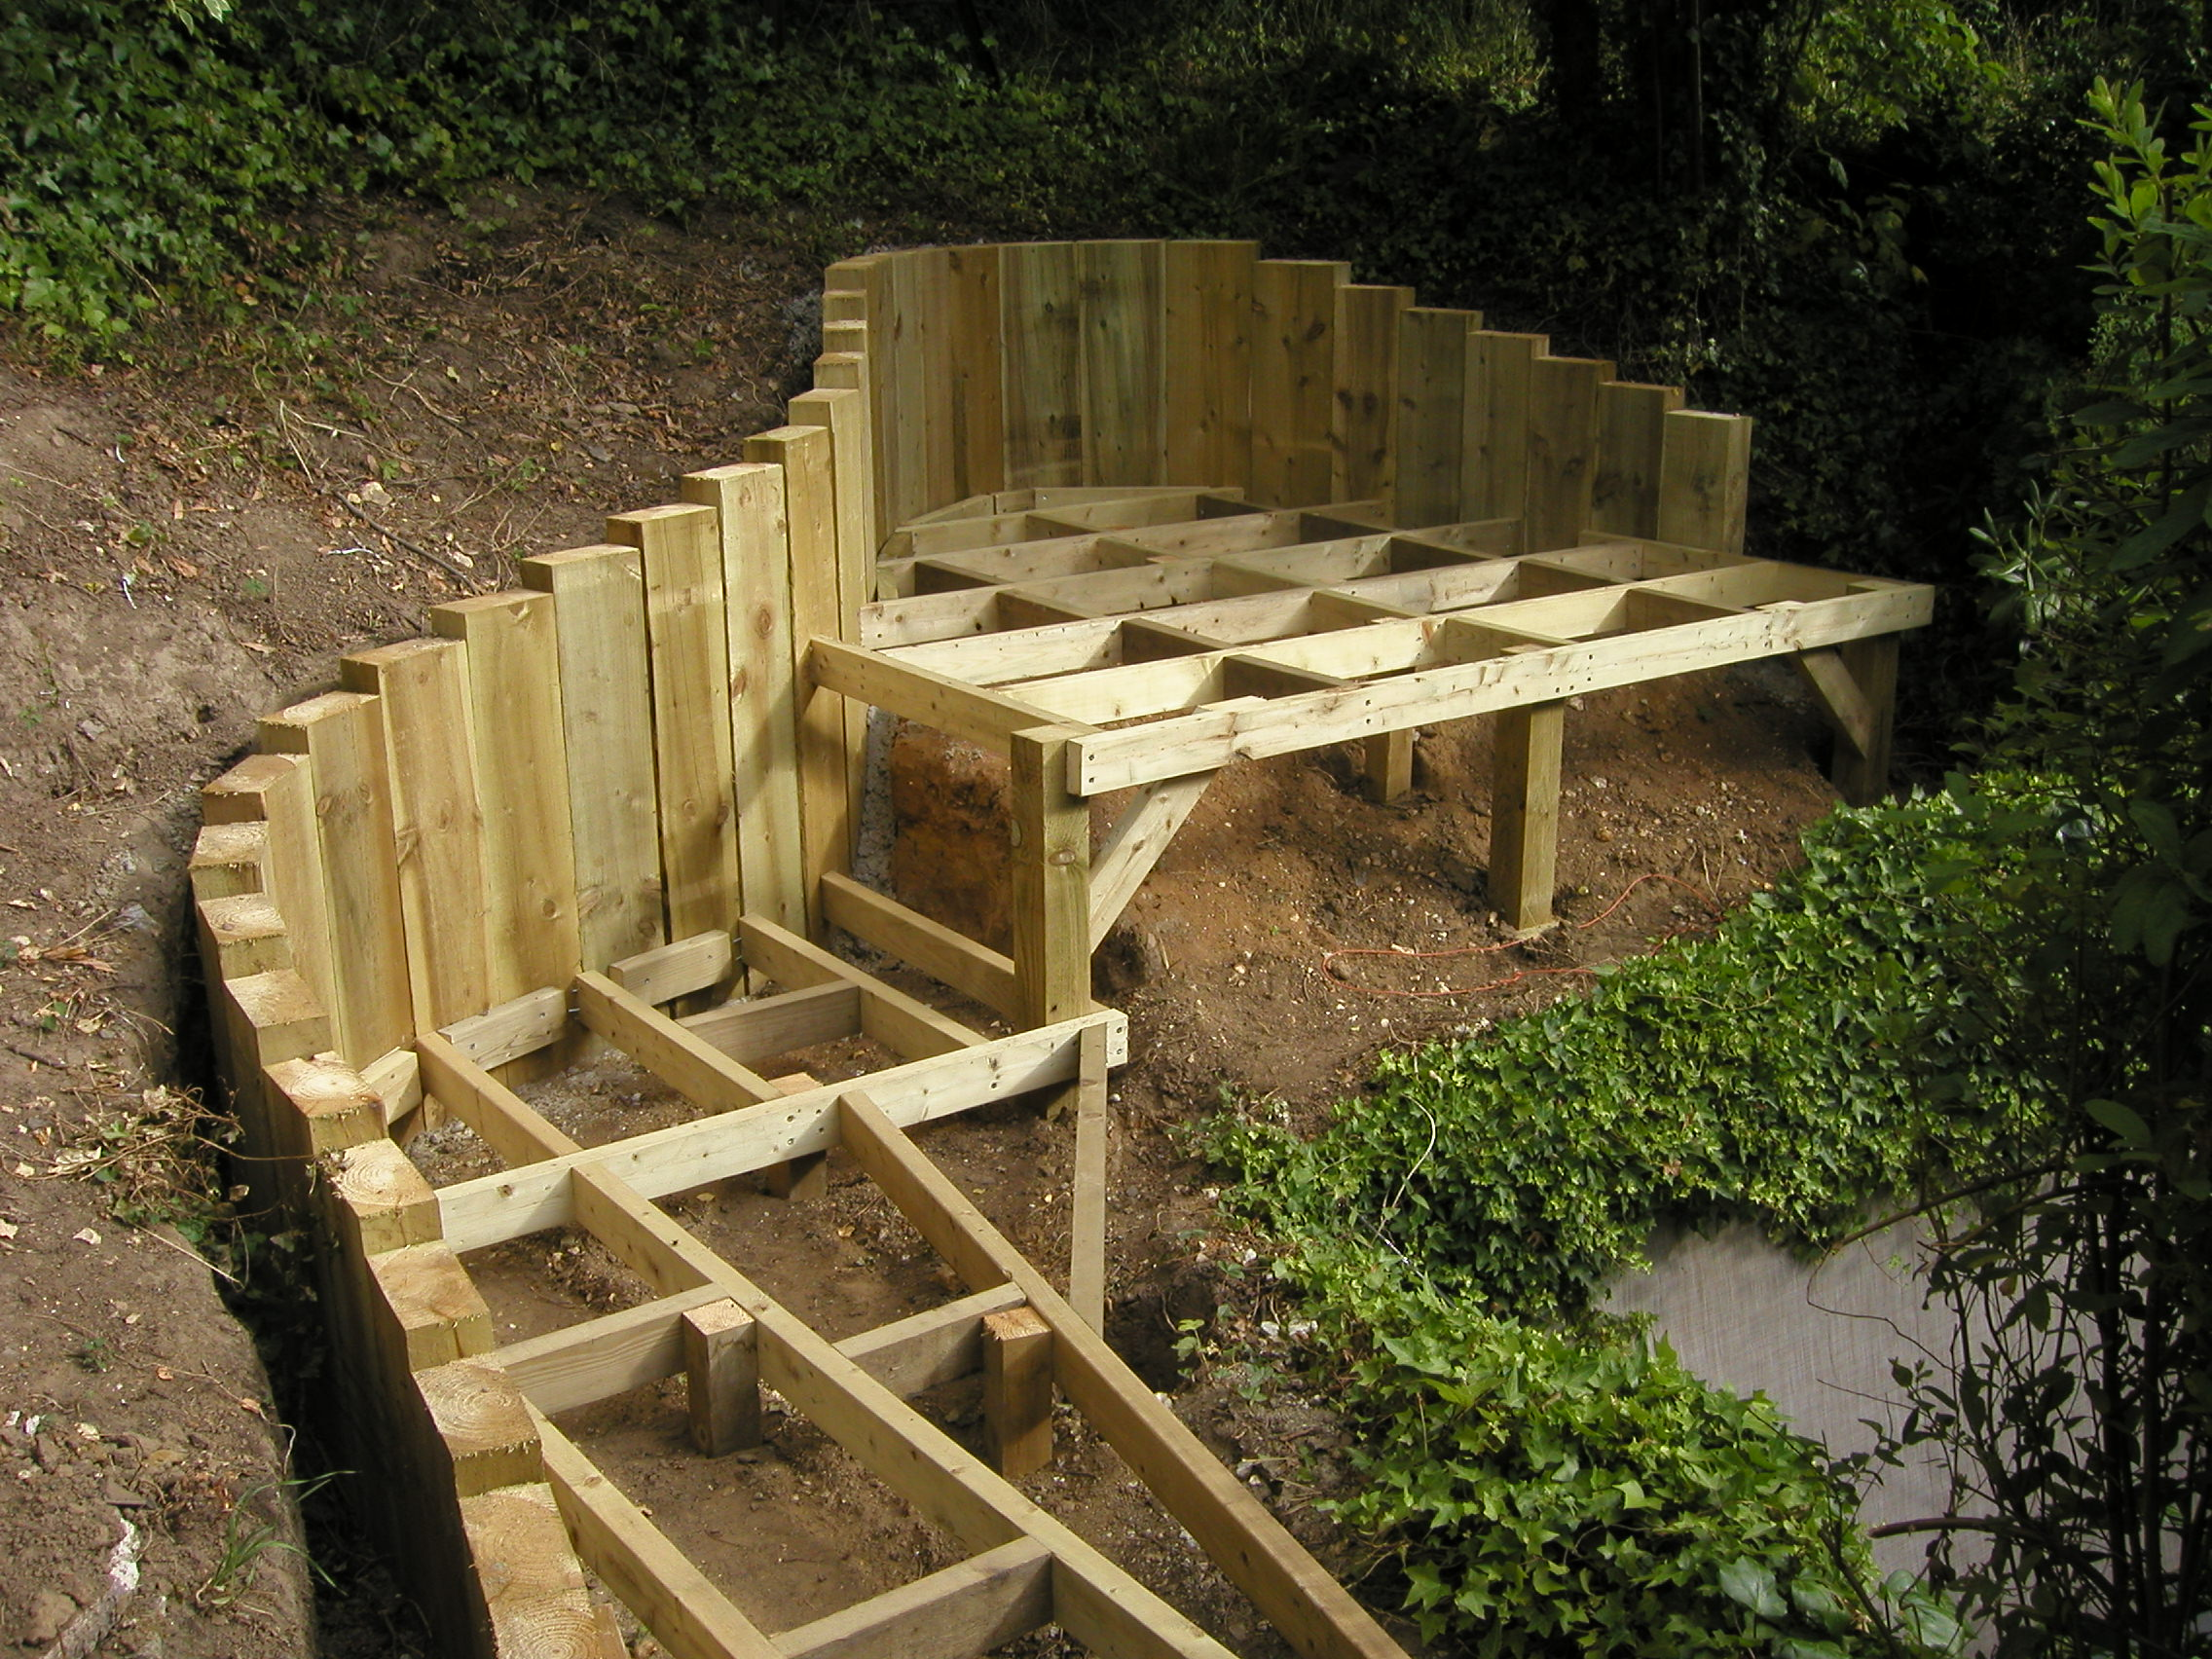 Adl timber structures decking garden landscaping sevenoaks for Timber deck construction